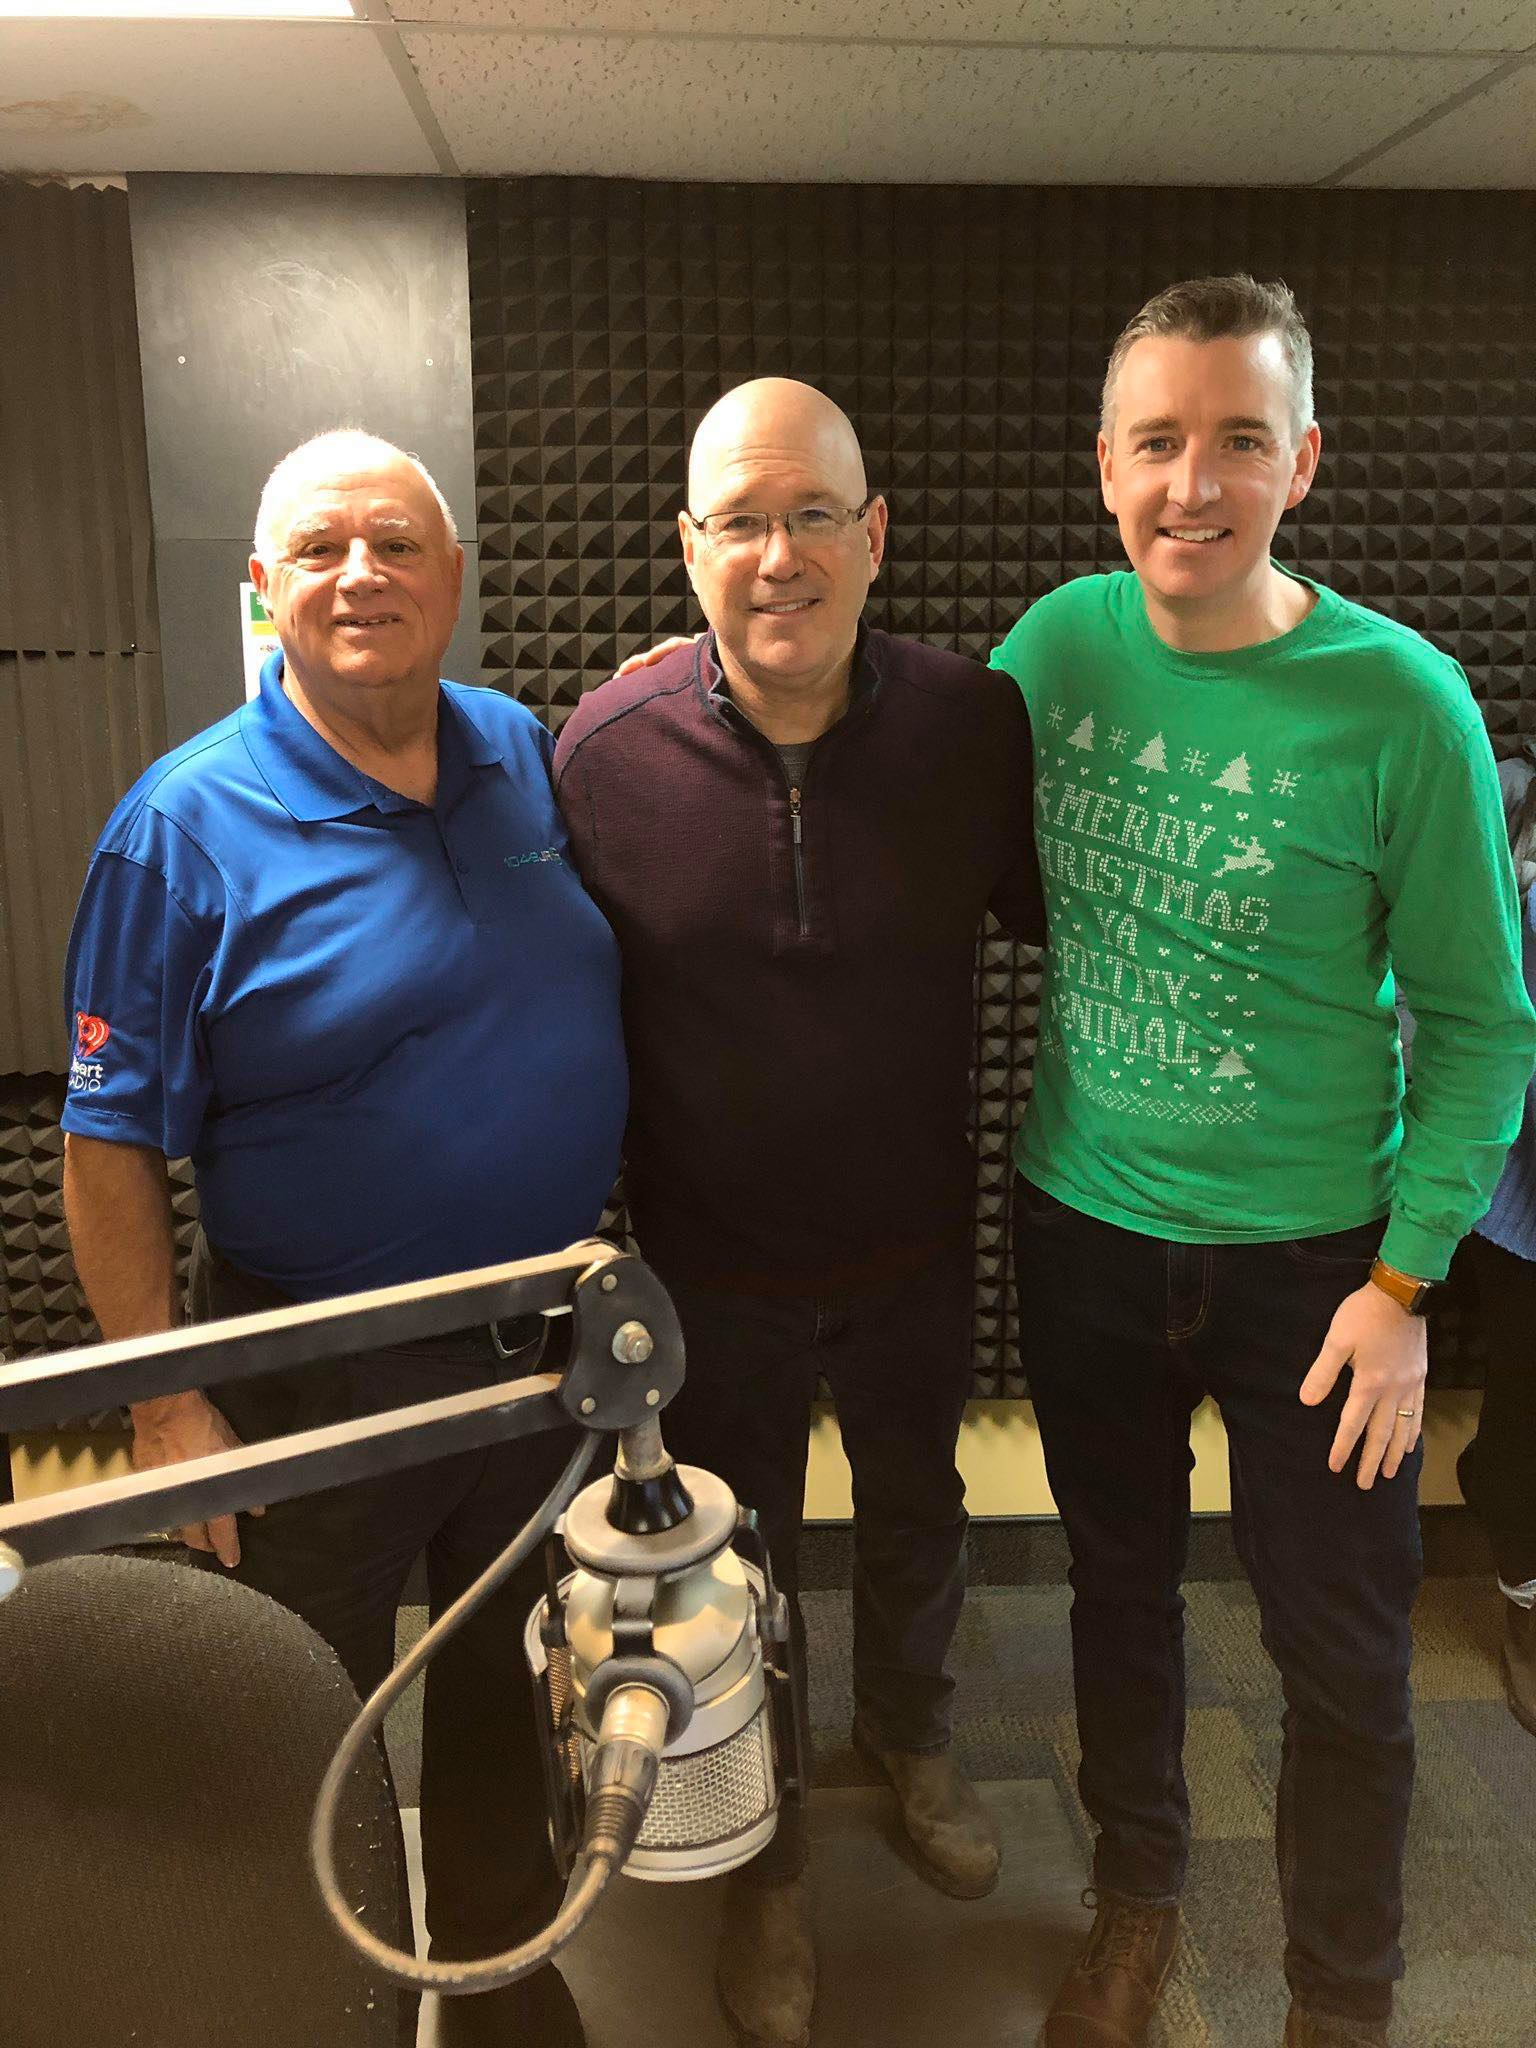 29th annual Bruce A Wylie Very Special Christmas Eve Show on 104.9 JRFM - 12/24/2019